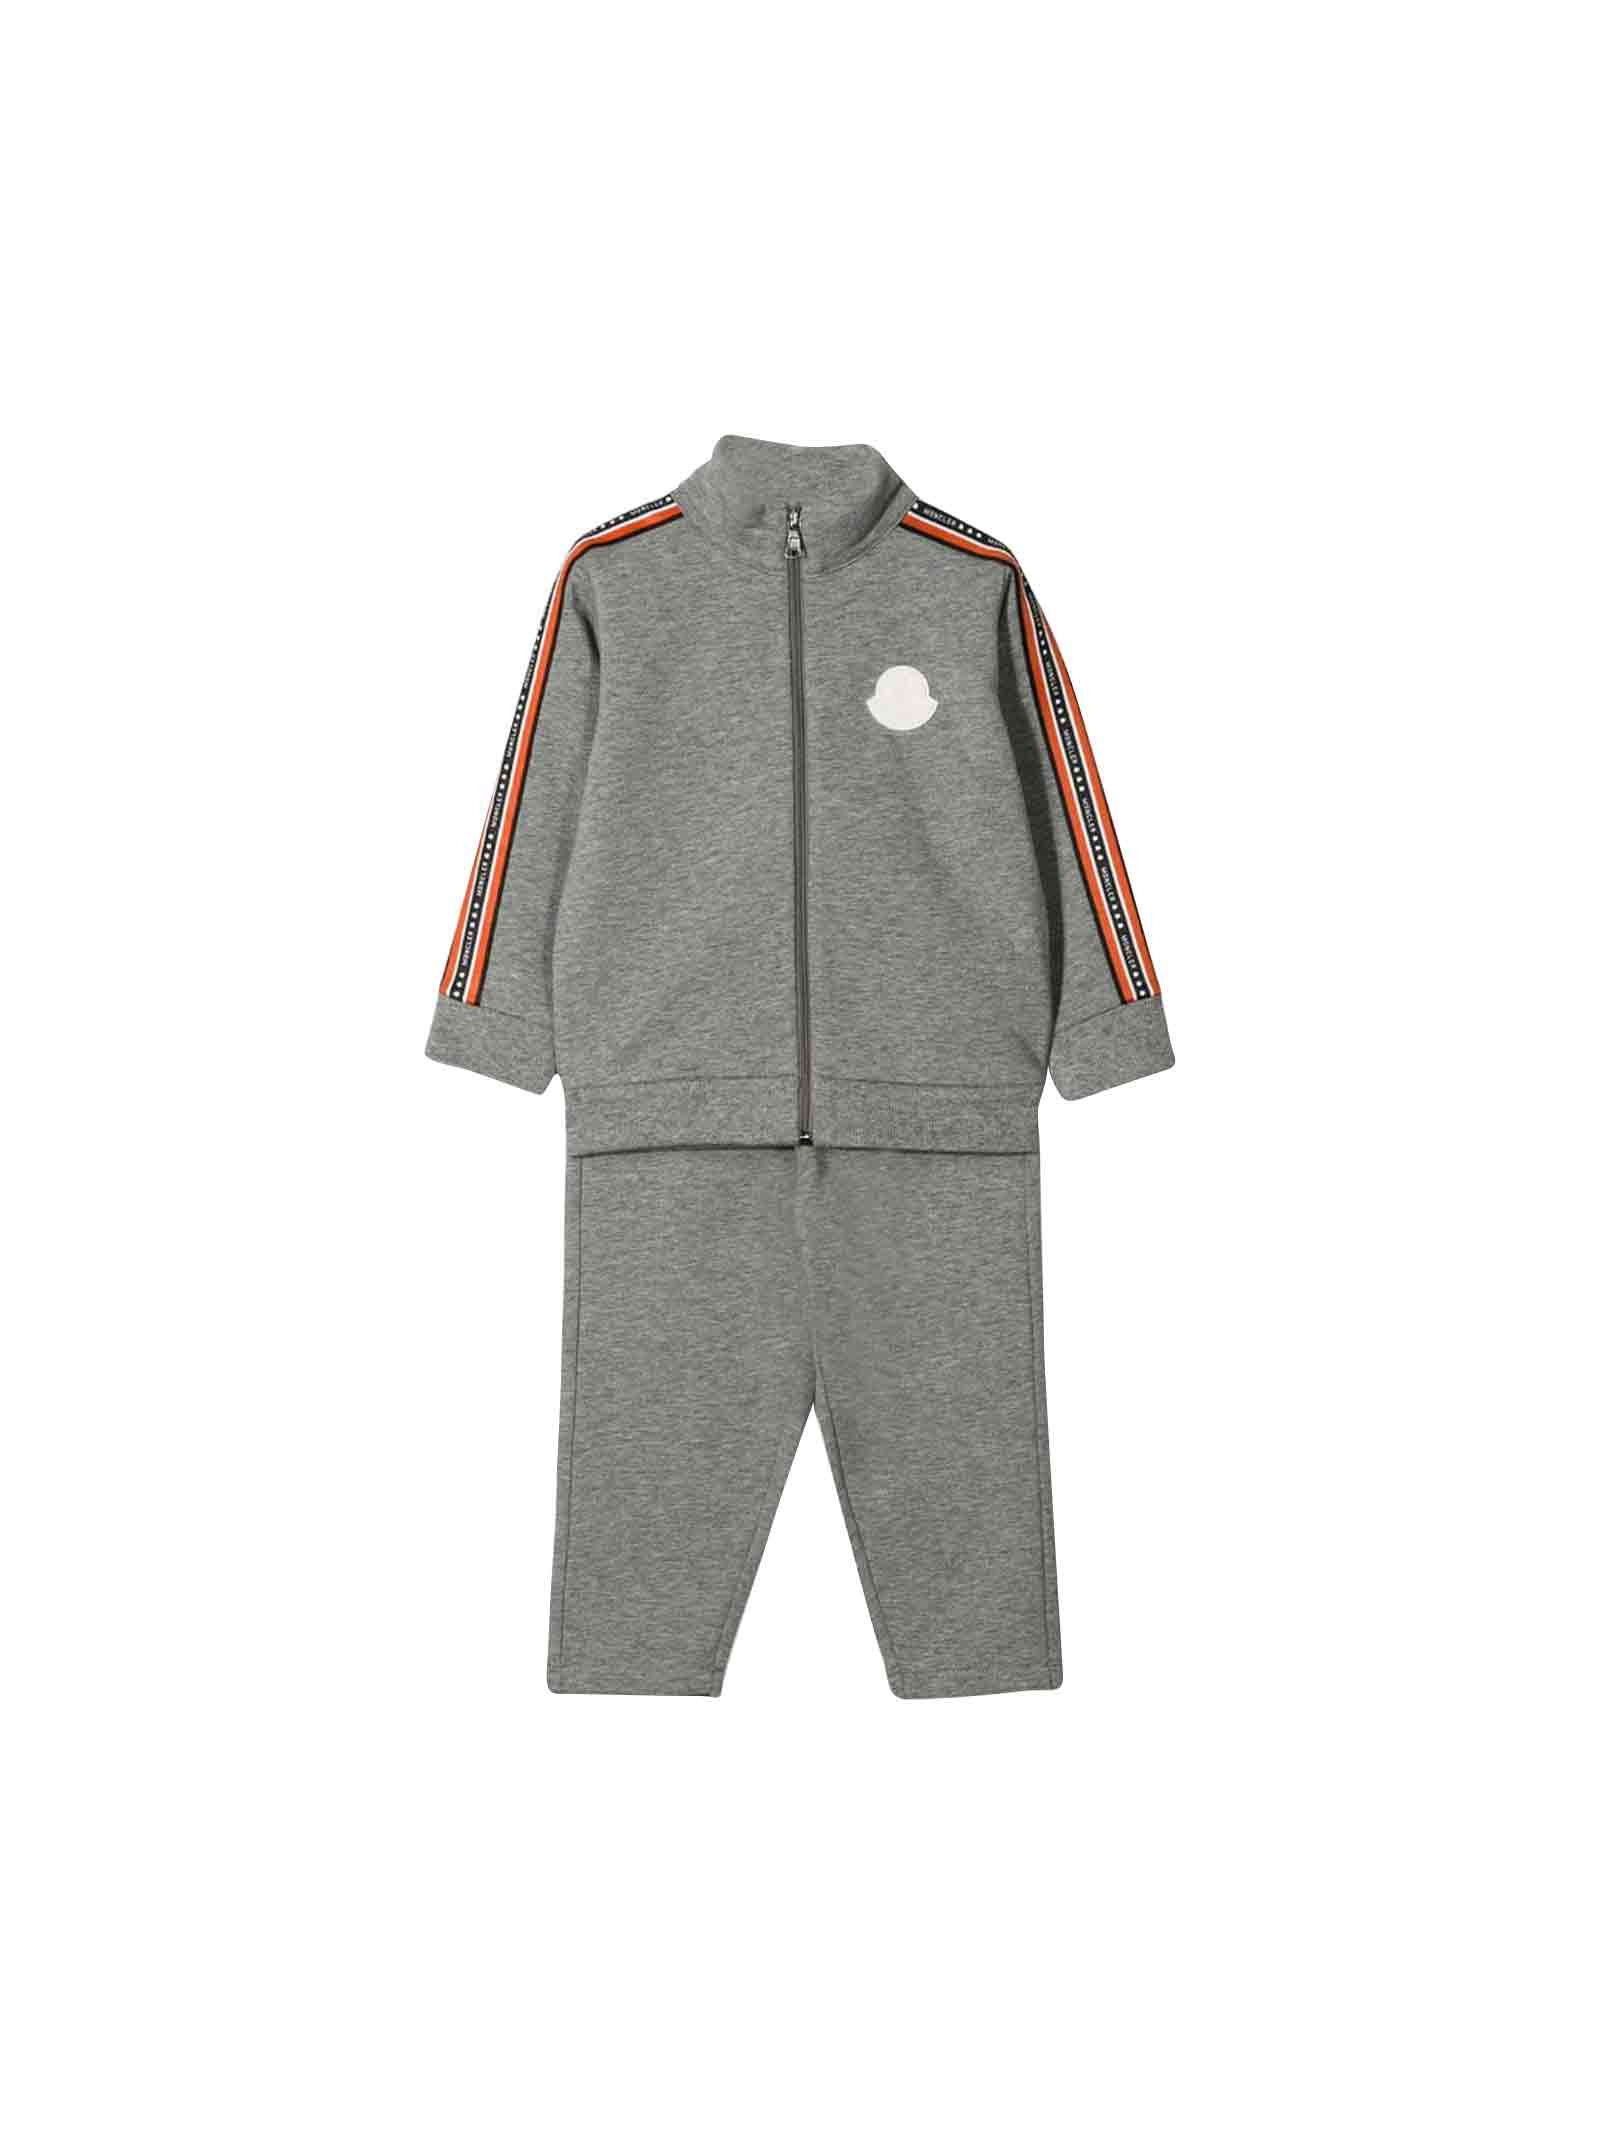 huge selection of 71b75 7a74d Tuta sportiva neonato Moncler kids